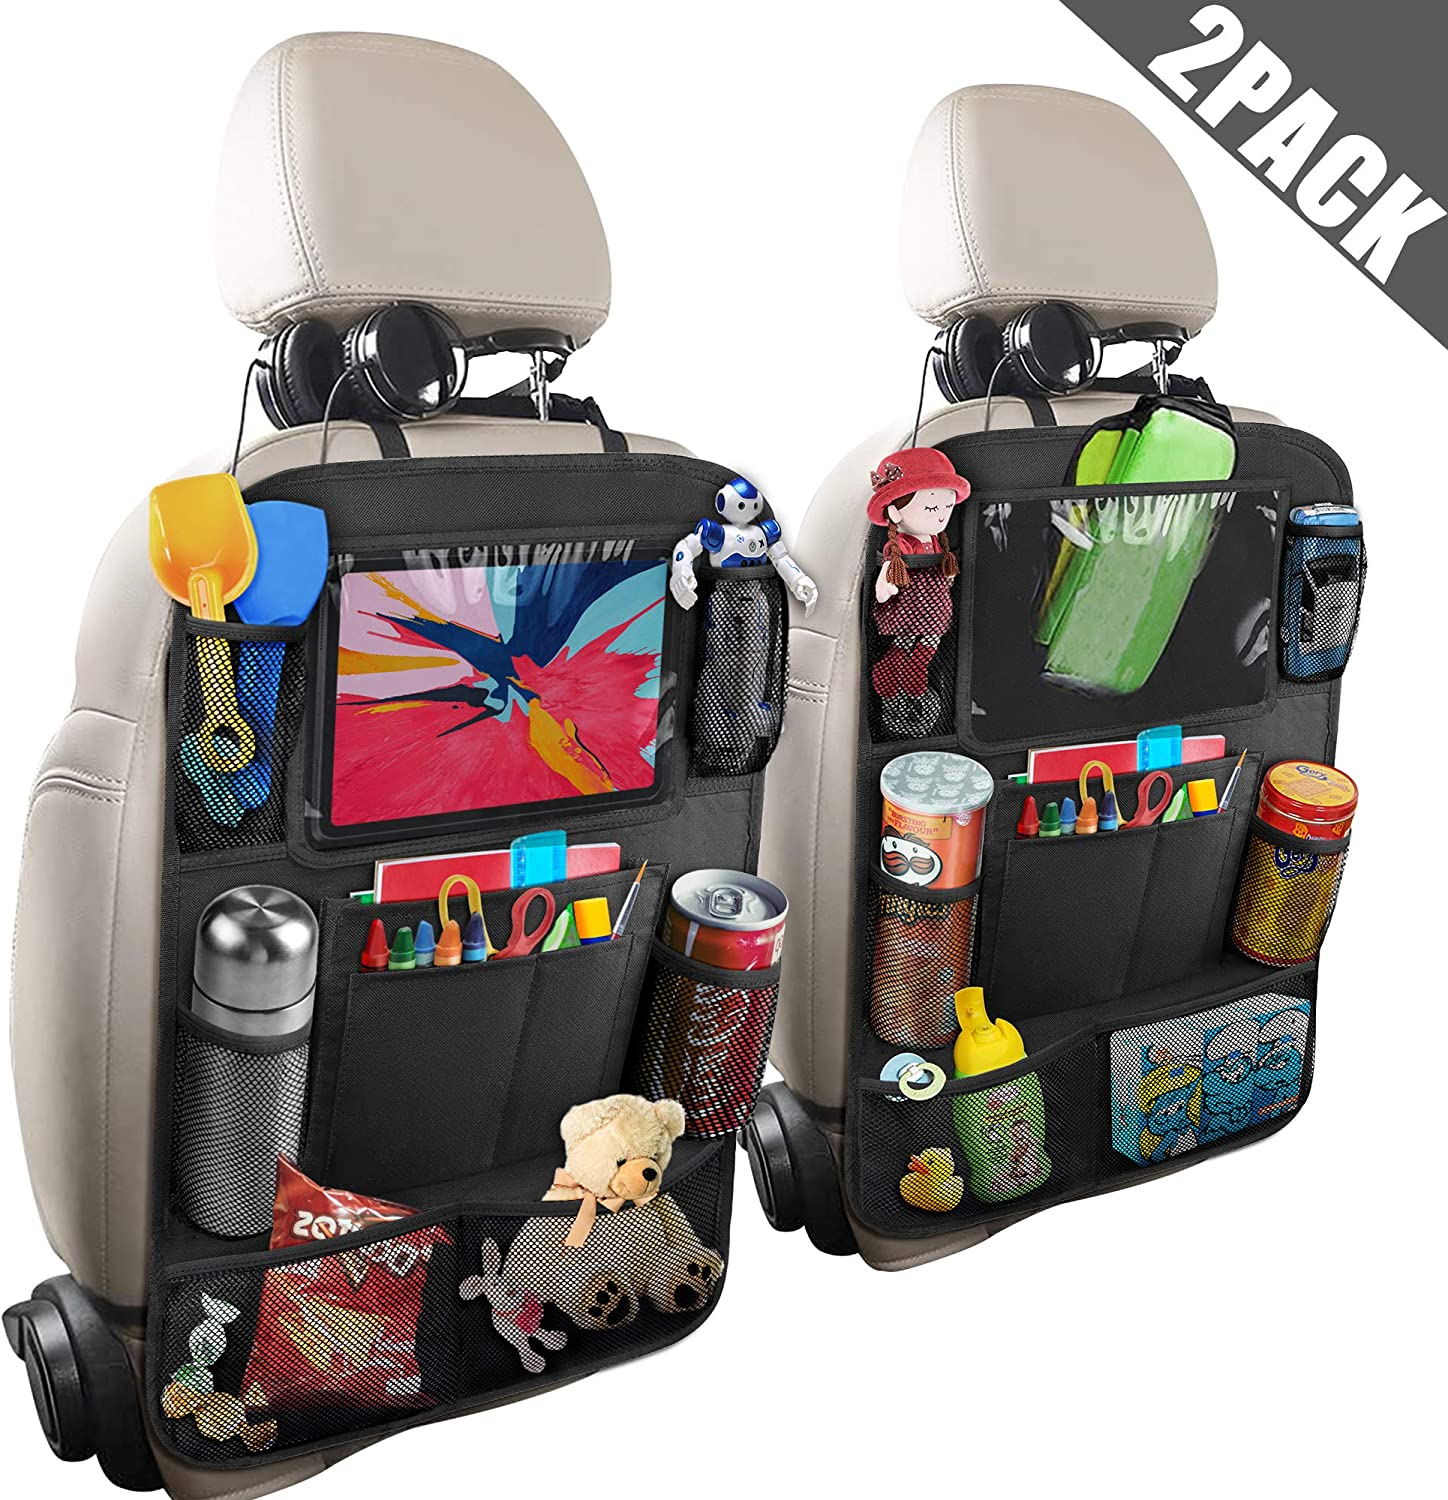 Anban Car Backseat Organizer with 10 Inch Tablet Holder + 9 Storage Pockets Kick Mats Back Seat Protector for Book Drink Toy Bottle, Travel Accessories for Kids Toddlers Black (2 Pack)